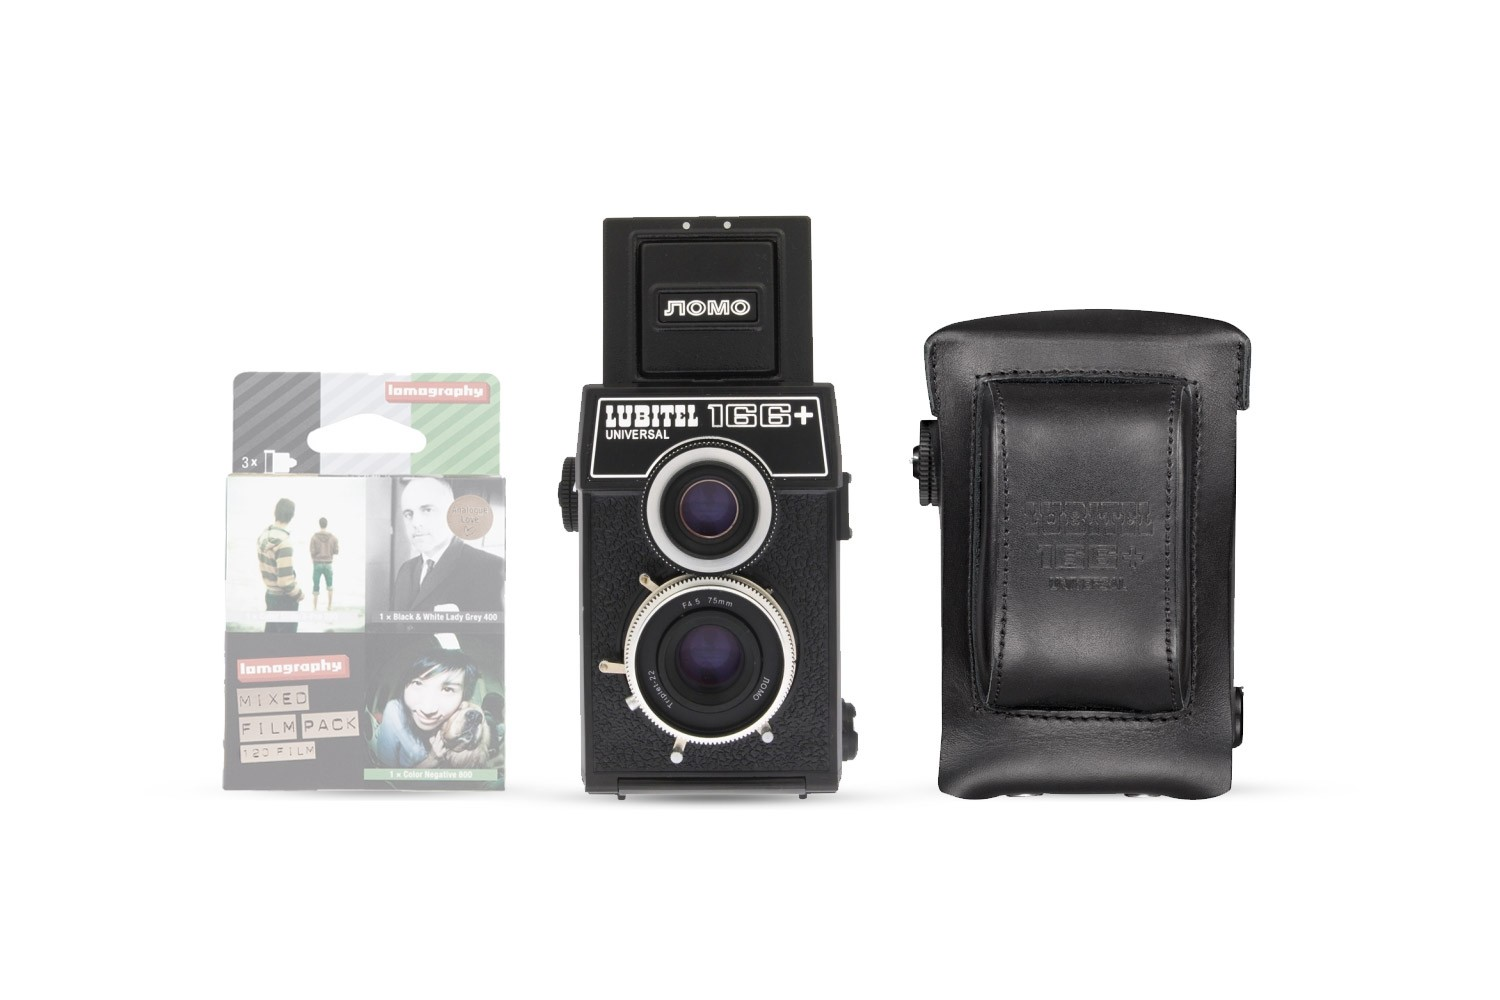 Lubitel 166+ Travel Pack